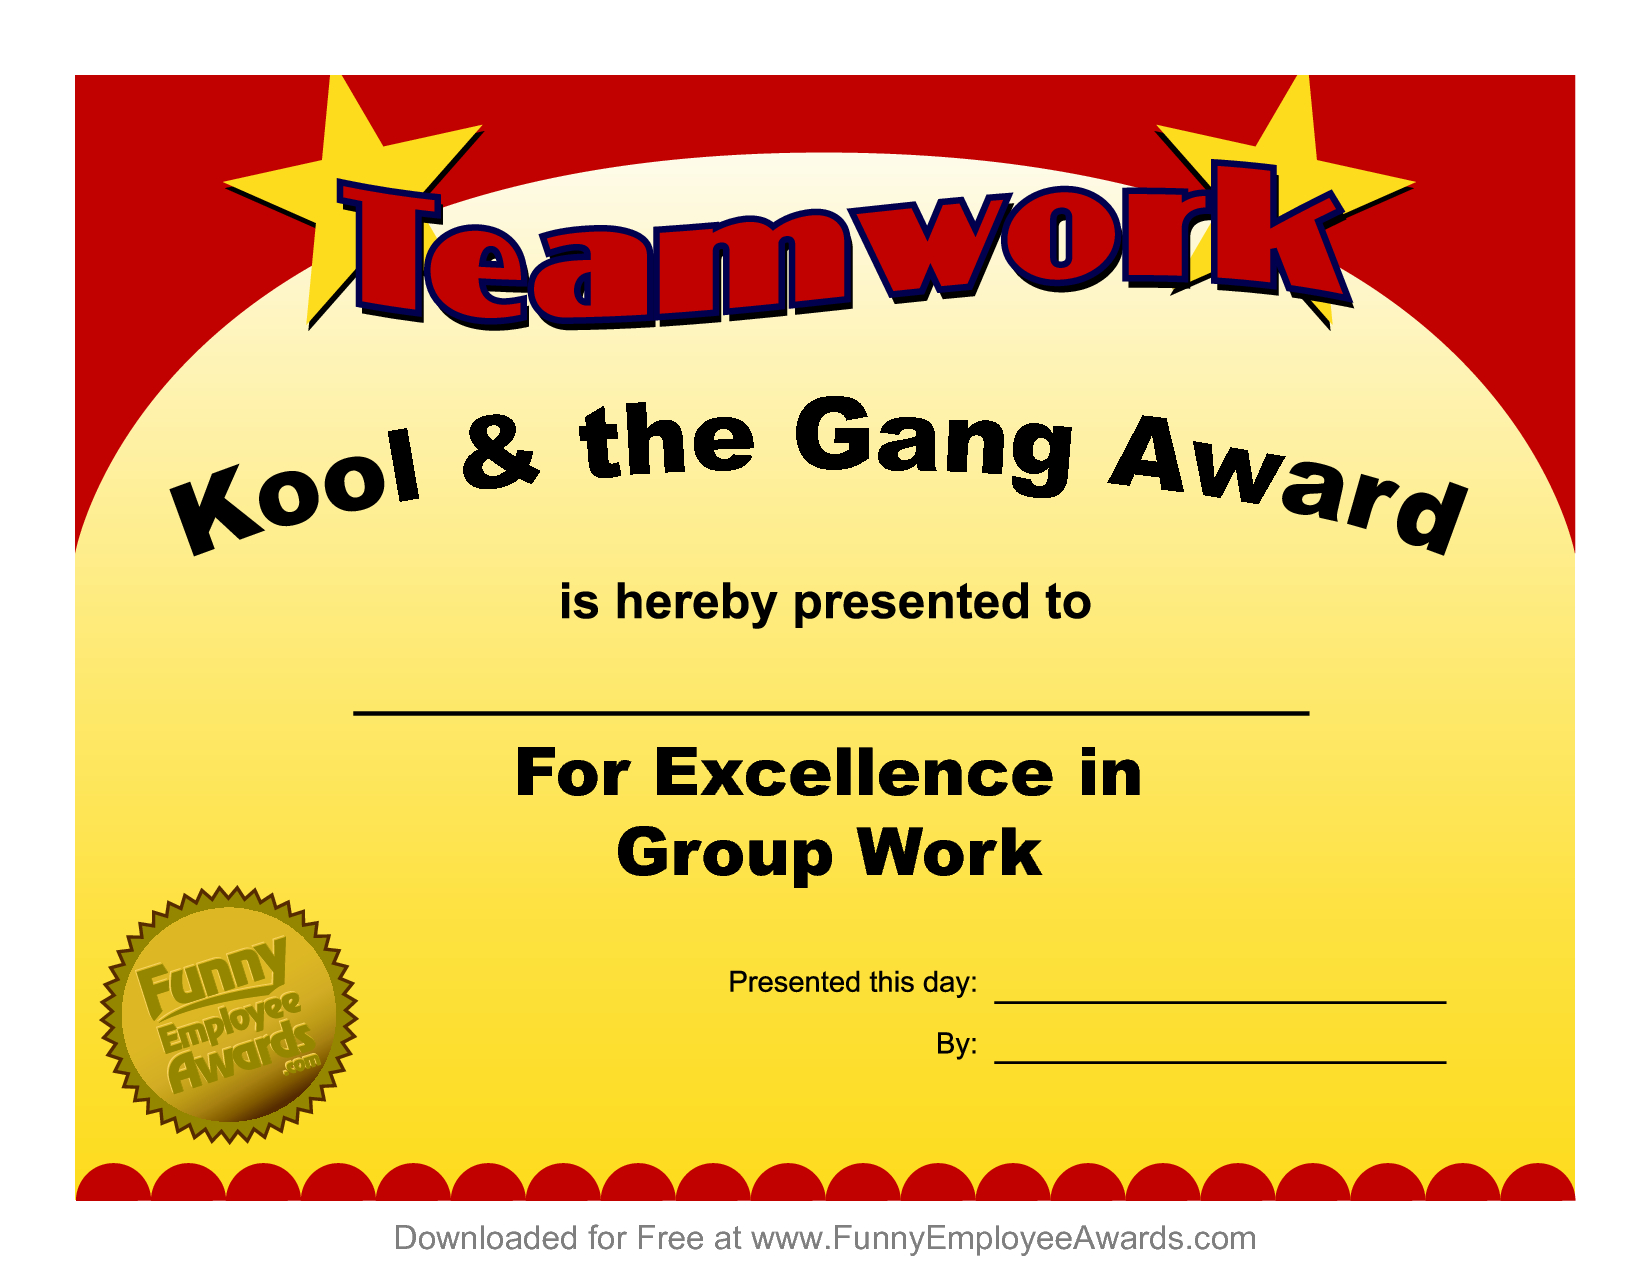 Funny Certificate Printable Templates Employee Award Free with regard to Free Funny Certificate Templates For Word